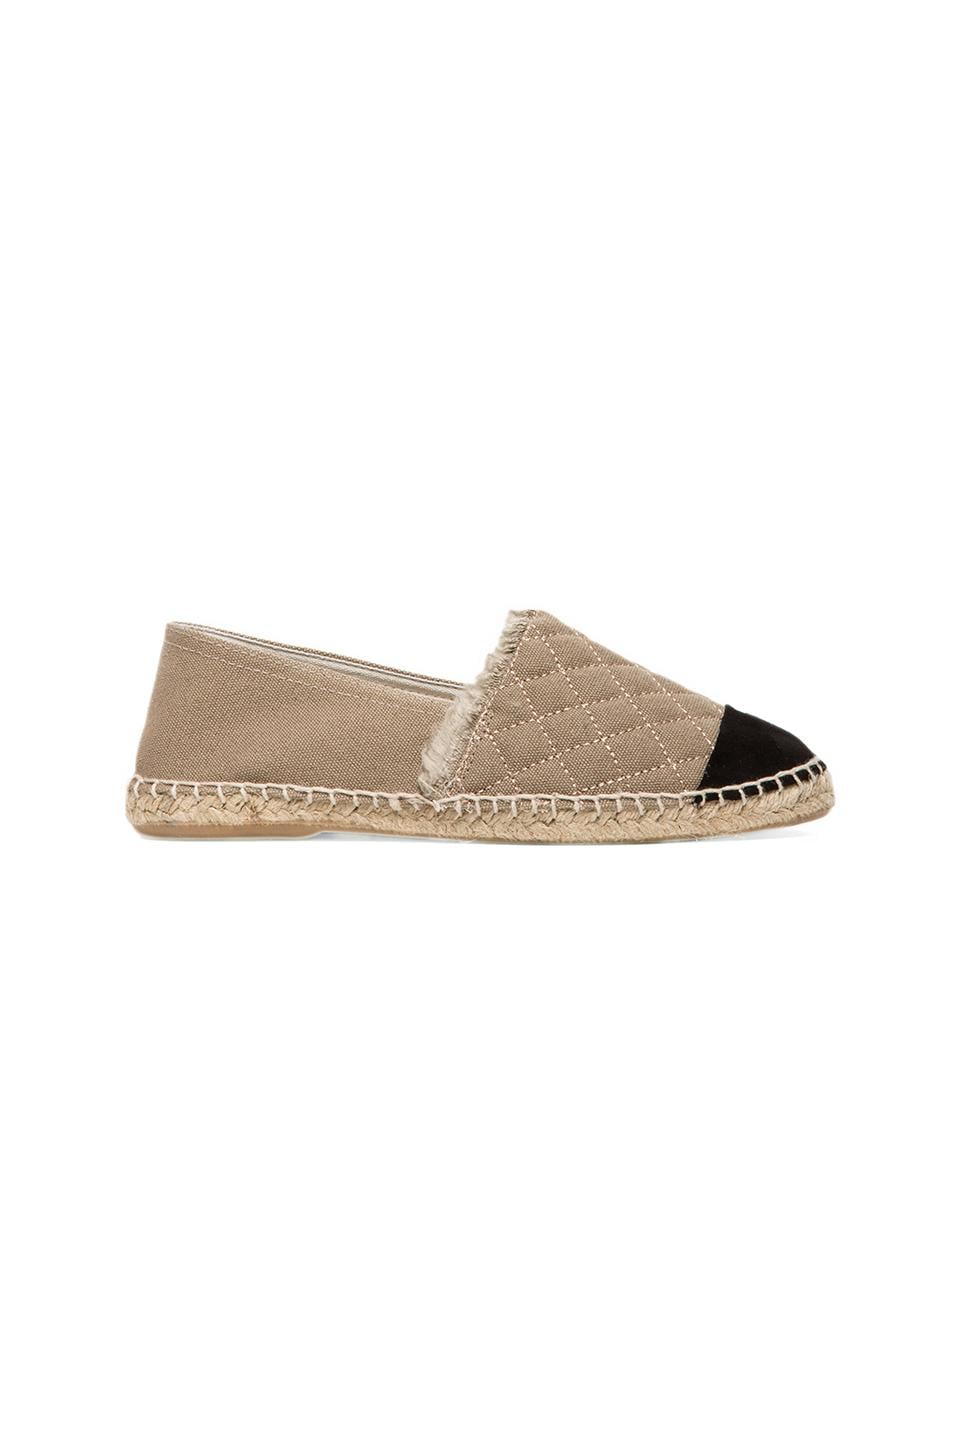 Jeffrey Campbell Lona Loafer in Taupe